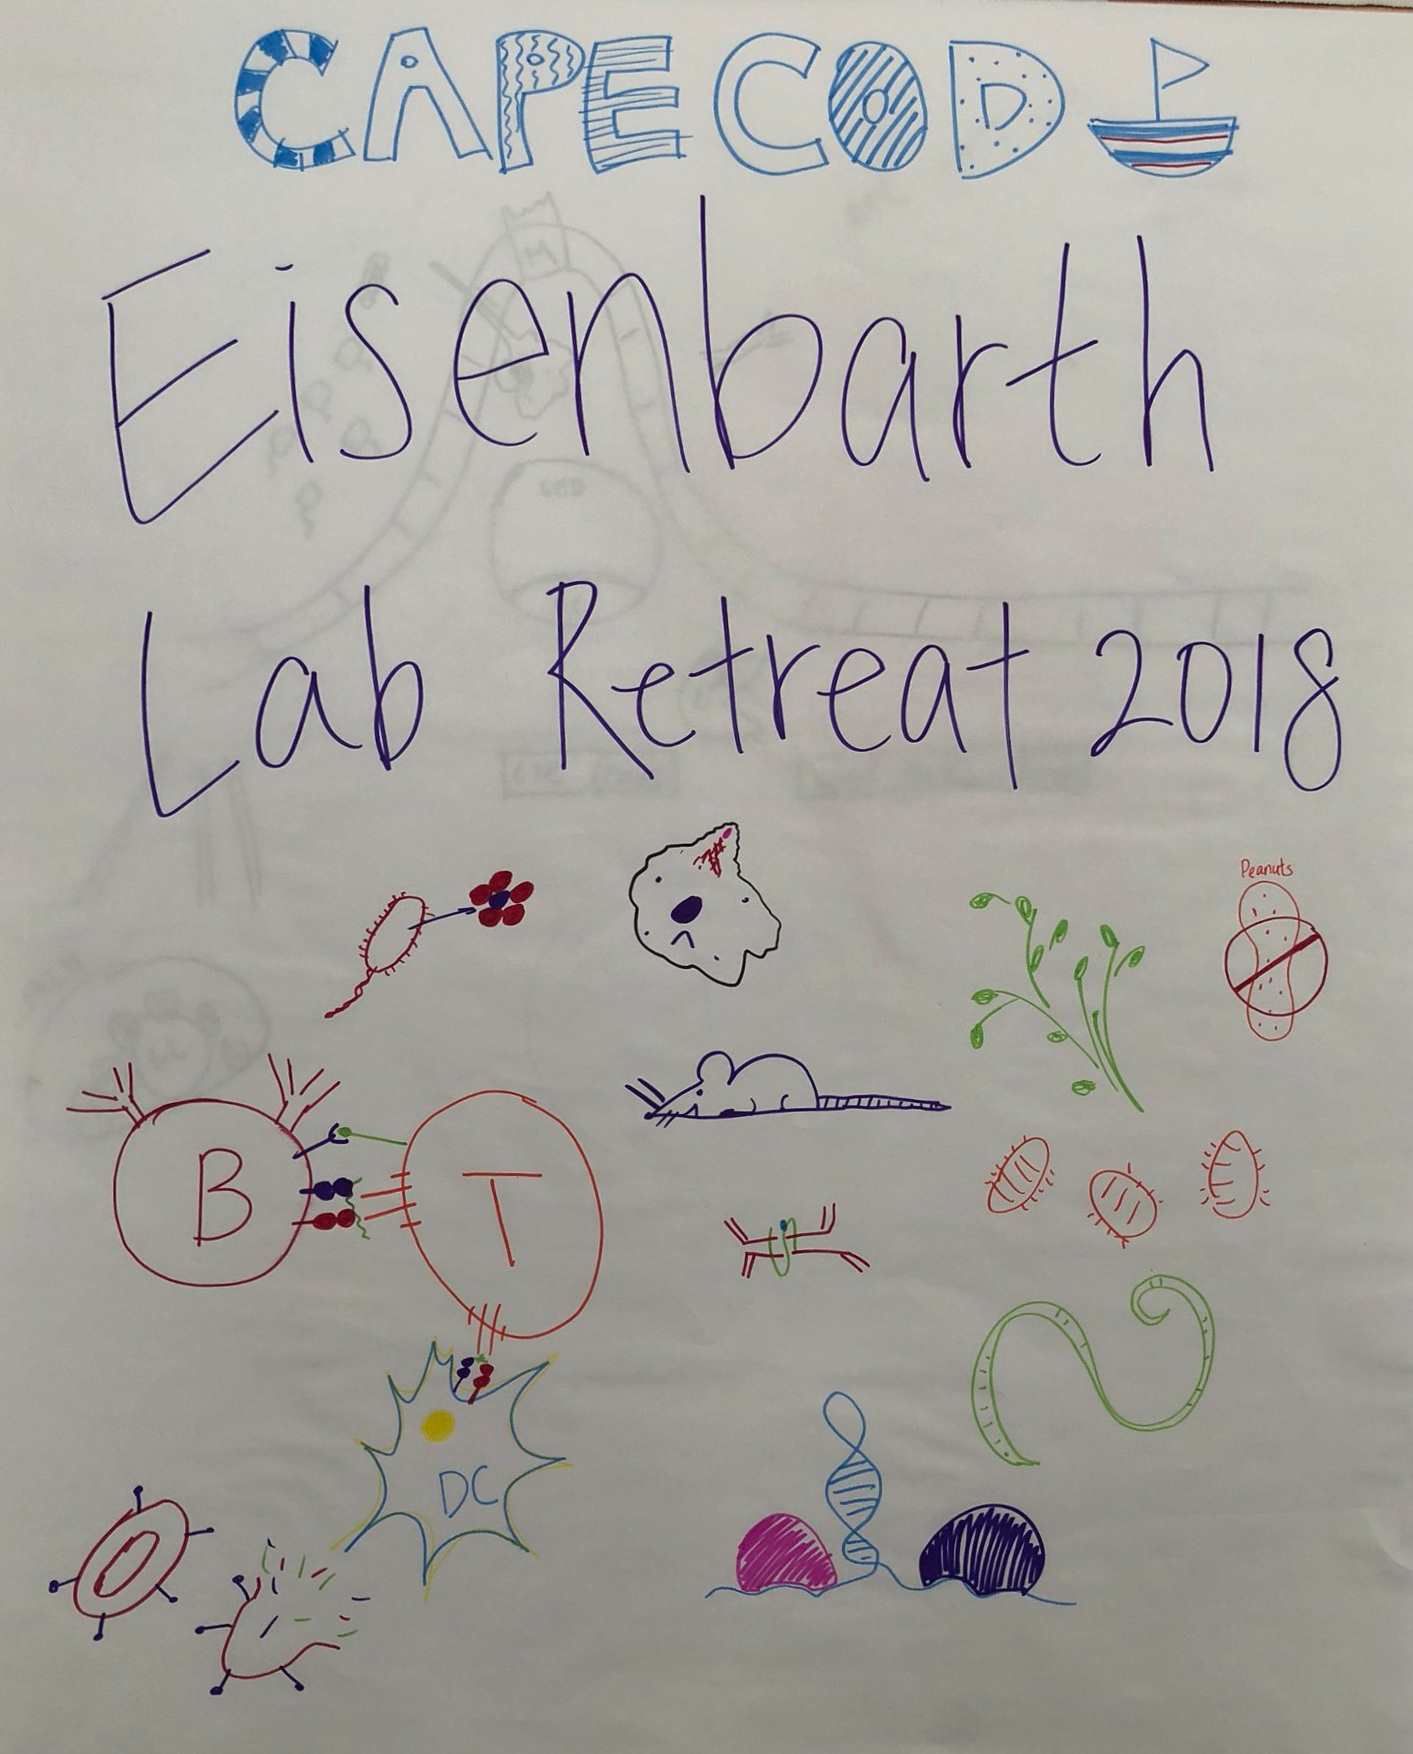 A fun drawing from the Eisenbarth Lab Retreat (2018).